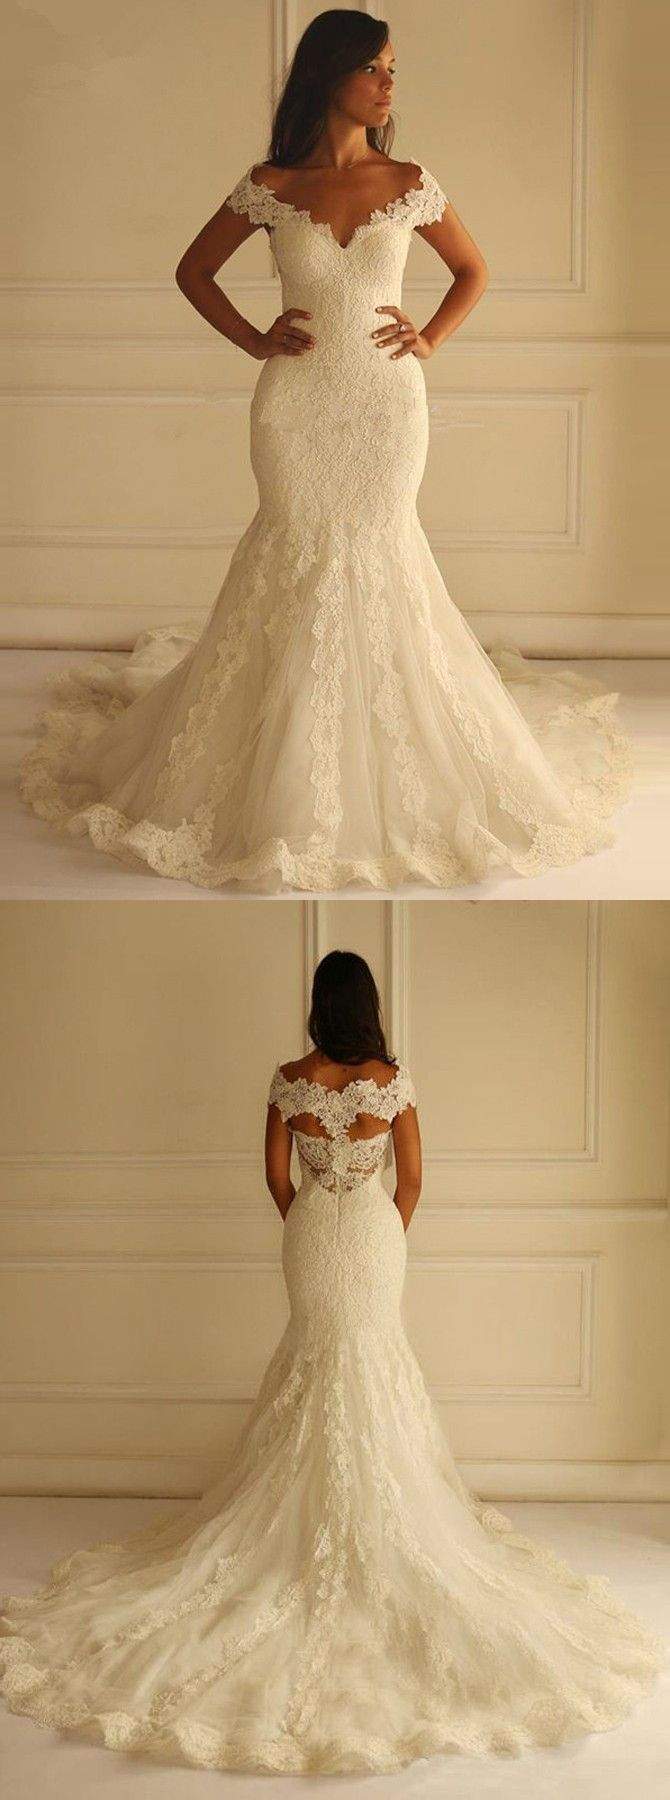 Best 25 off white wedding dresses ideas on pinterest for Wedding dresses to buy off the rack